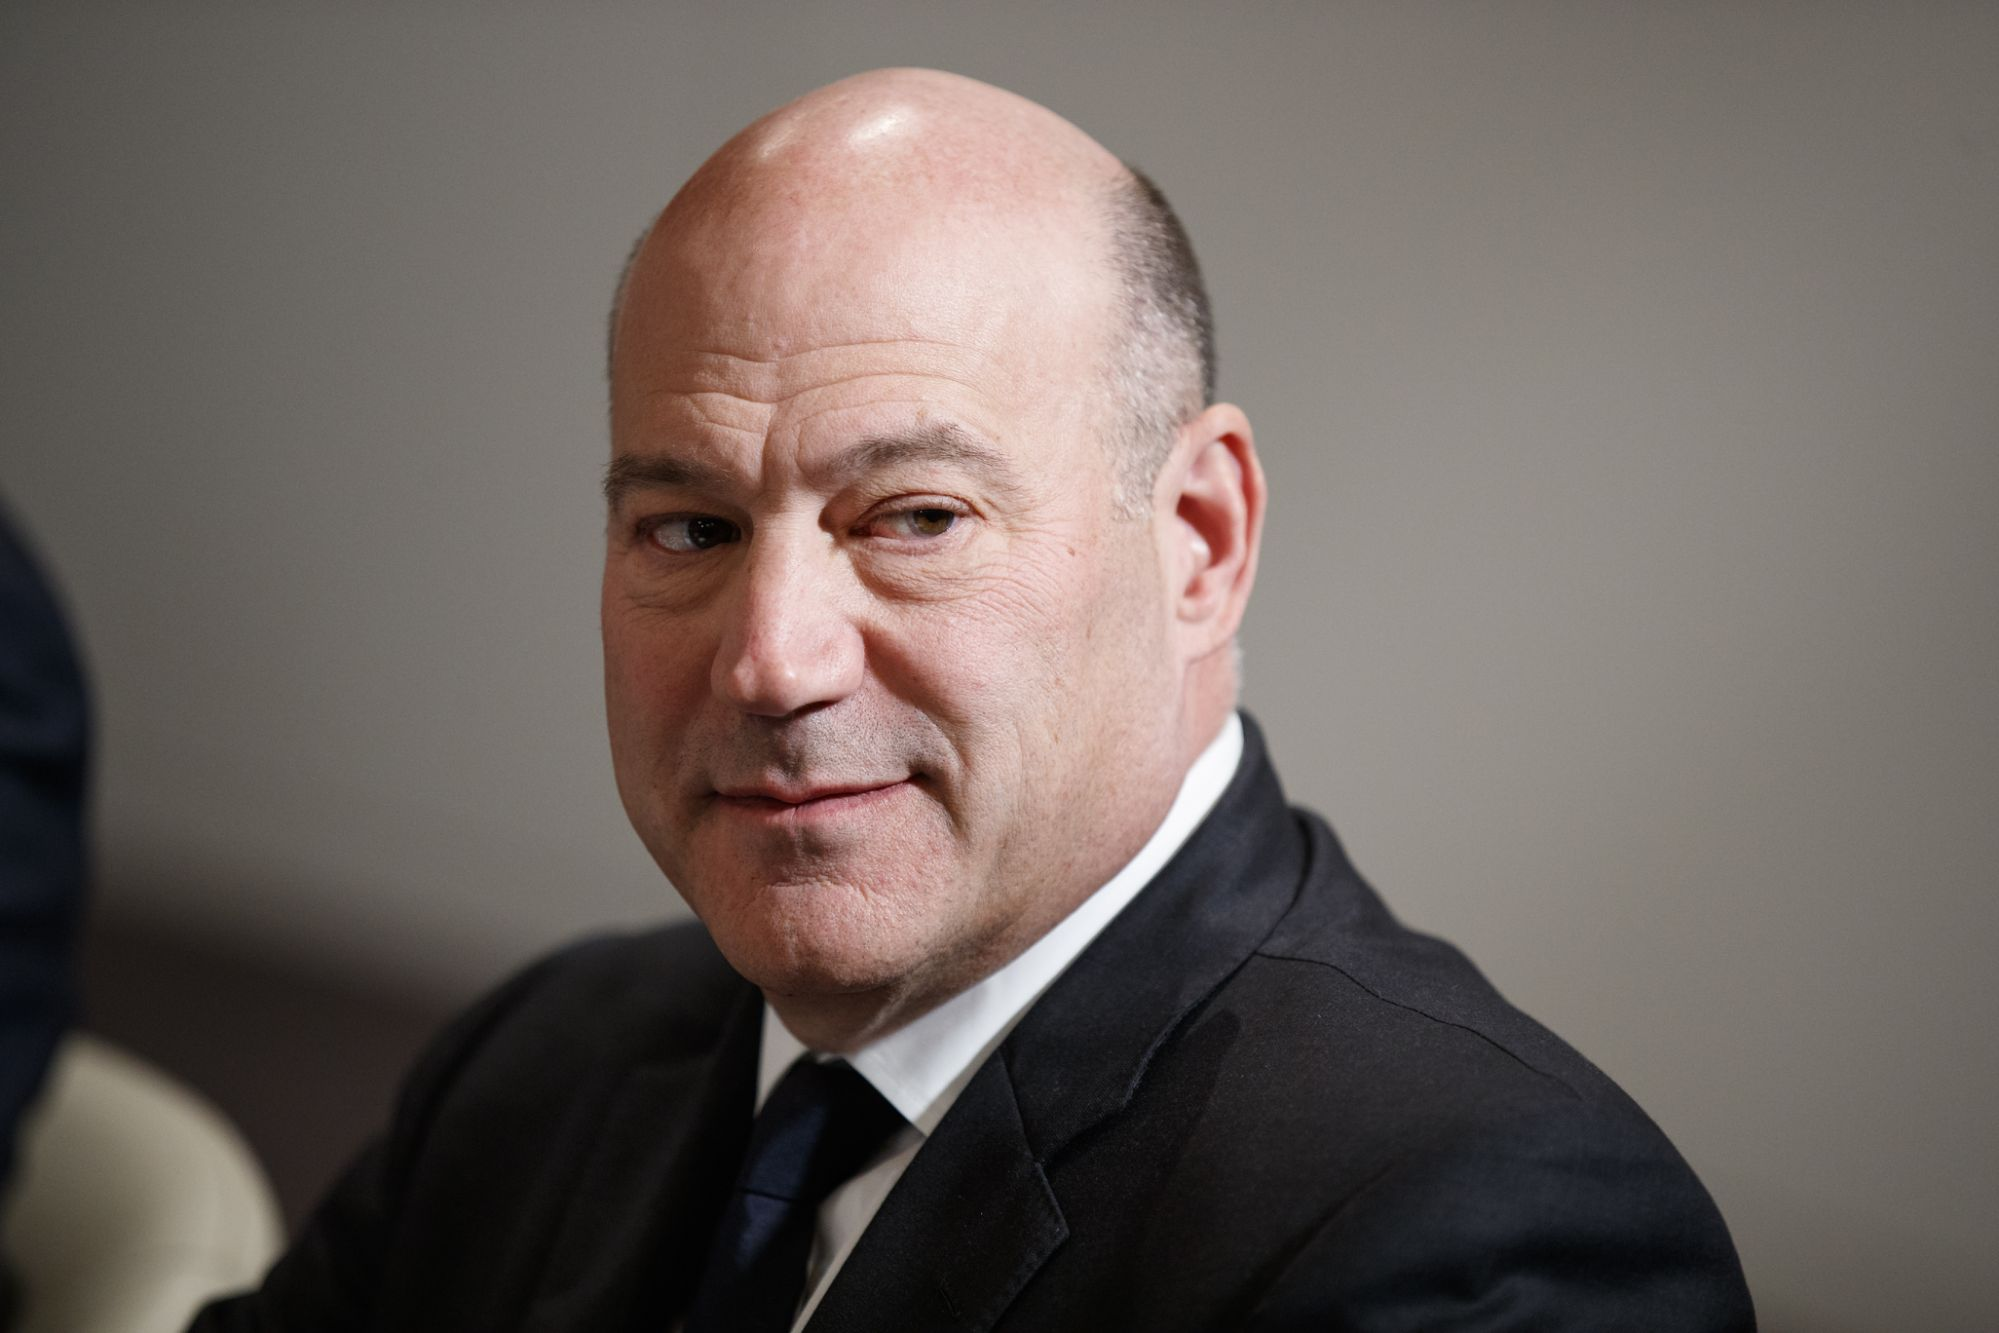 former-trump-advisor-gary-cohn:-markets-are-down-on-the-'100%-probability'-that-stimulus-deal-won't-pass-before-the-election